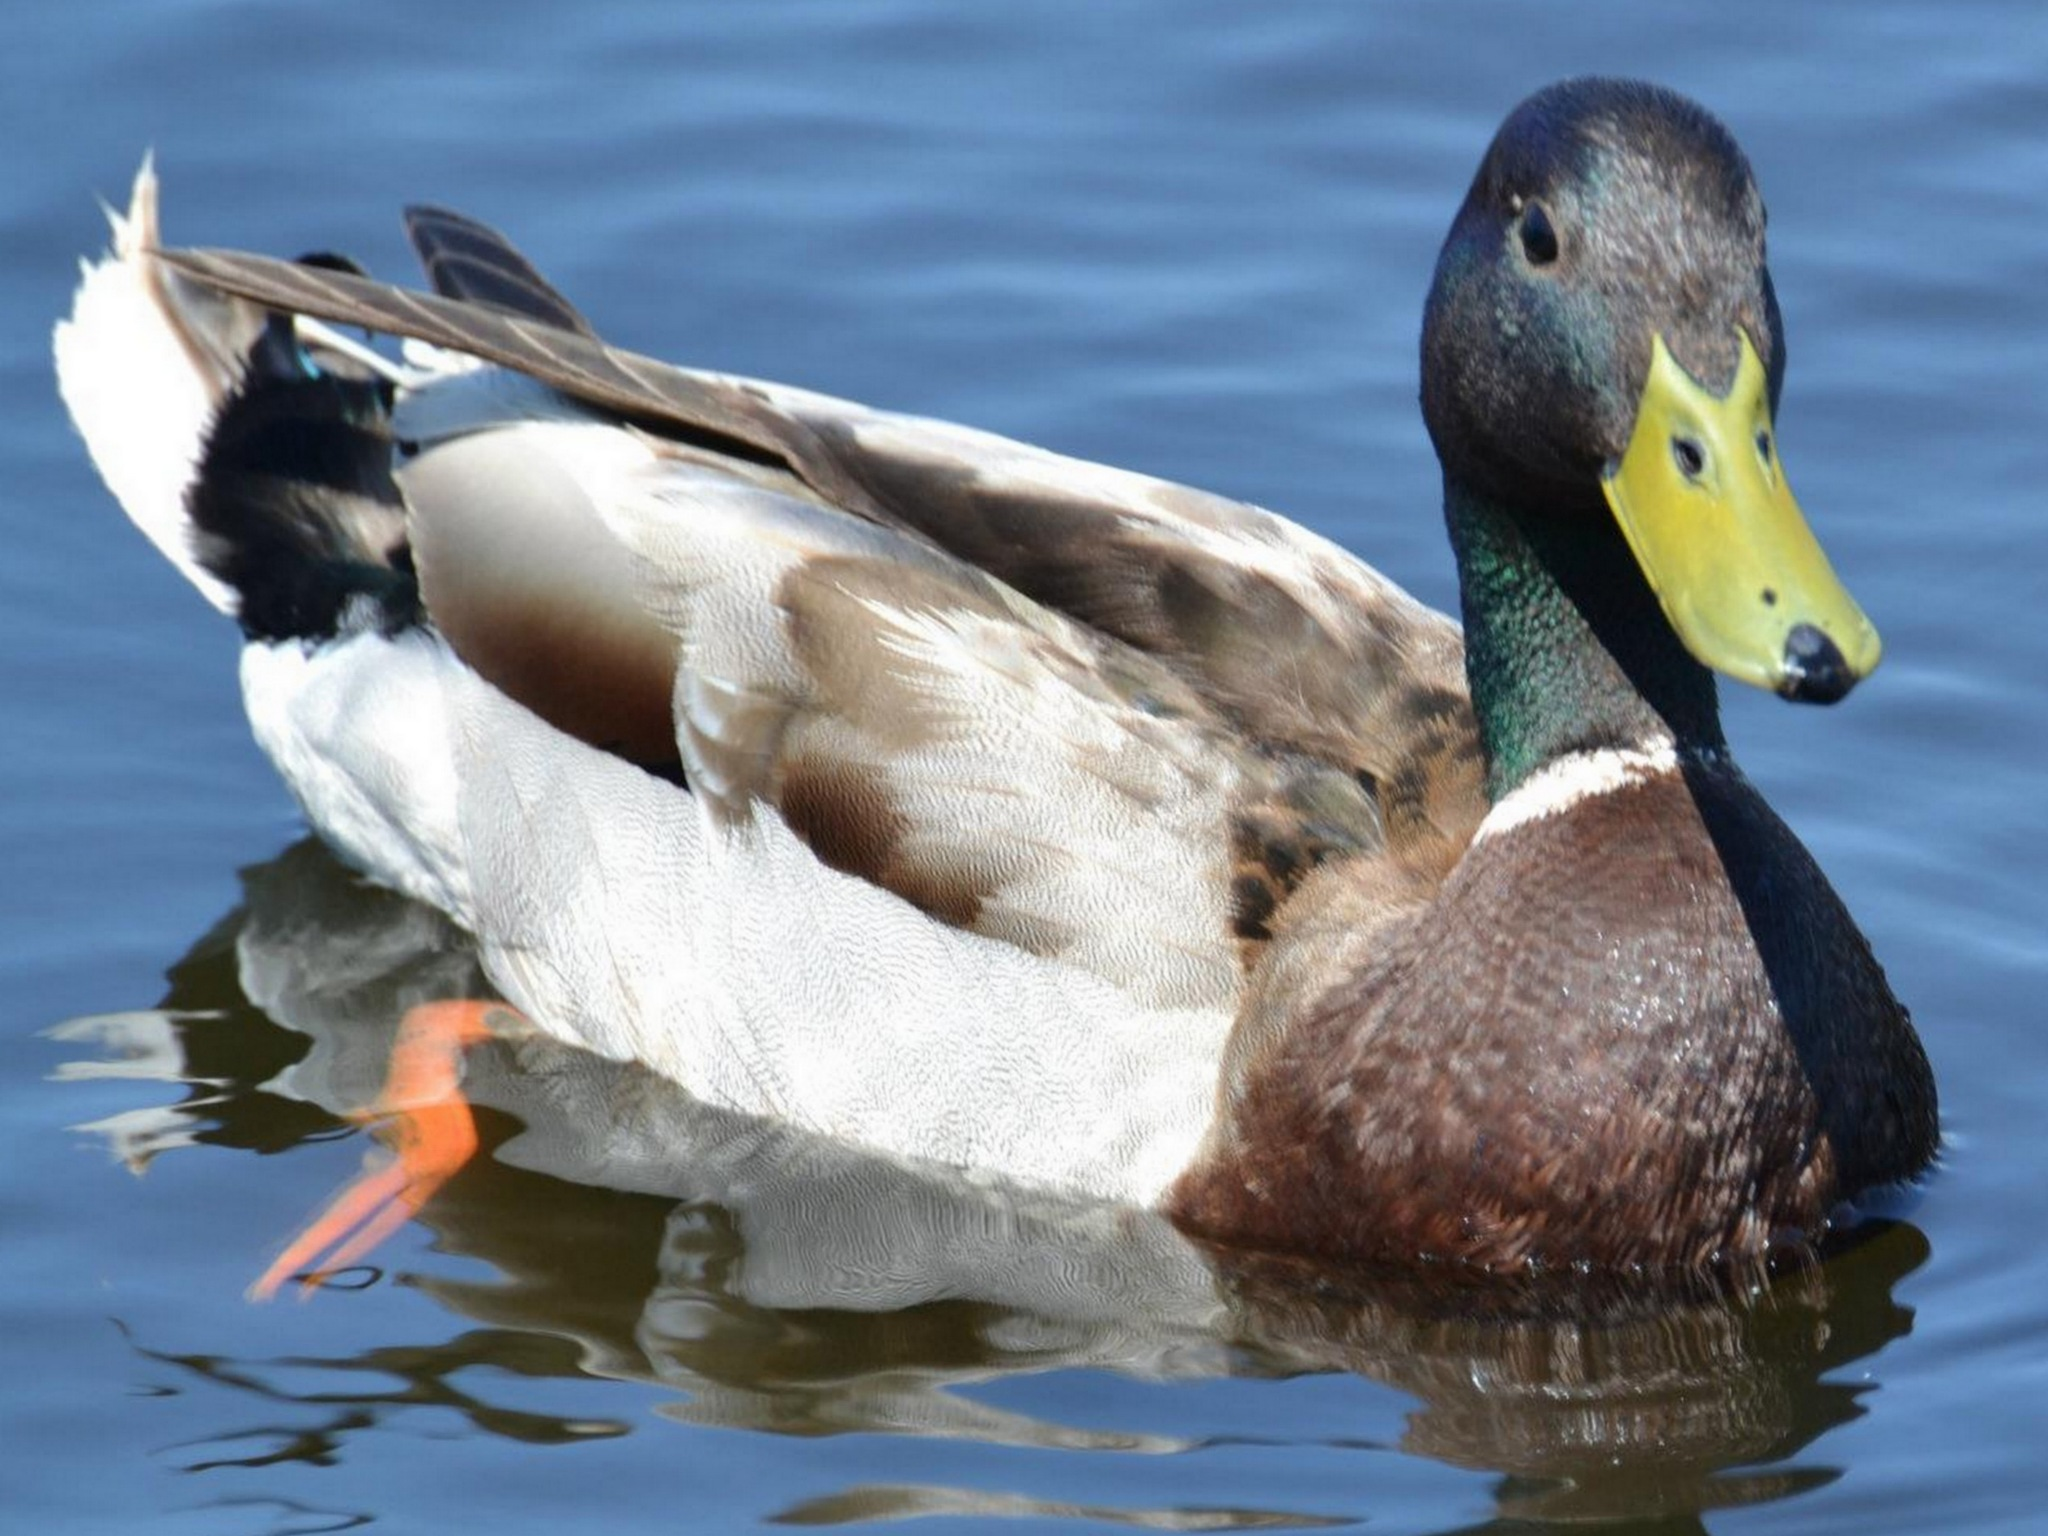 Duck by ilseBodewes